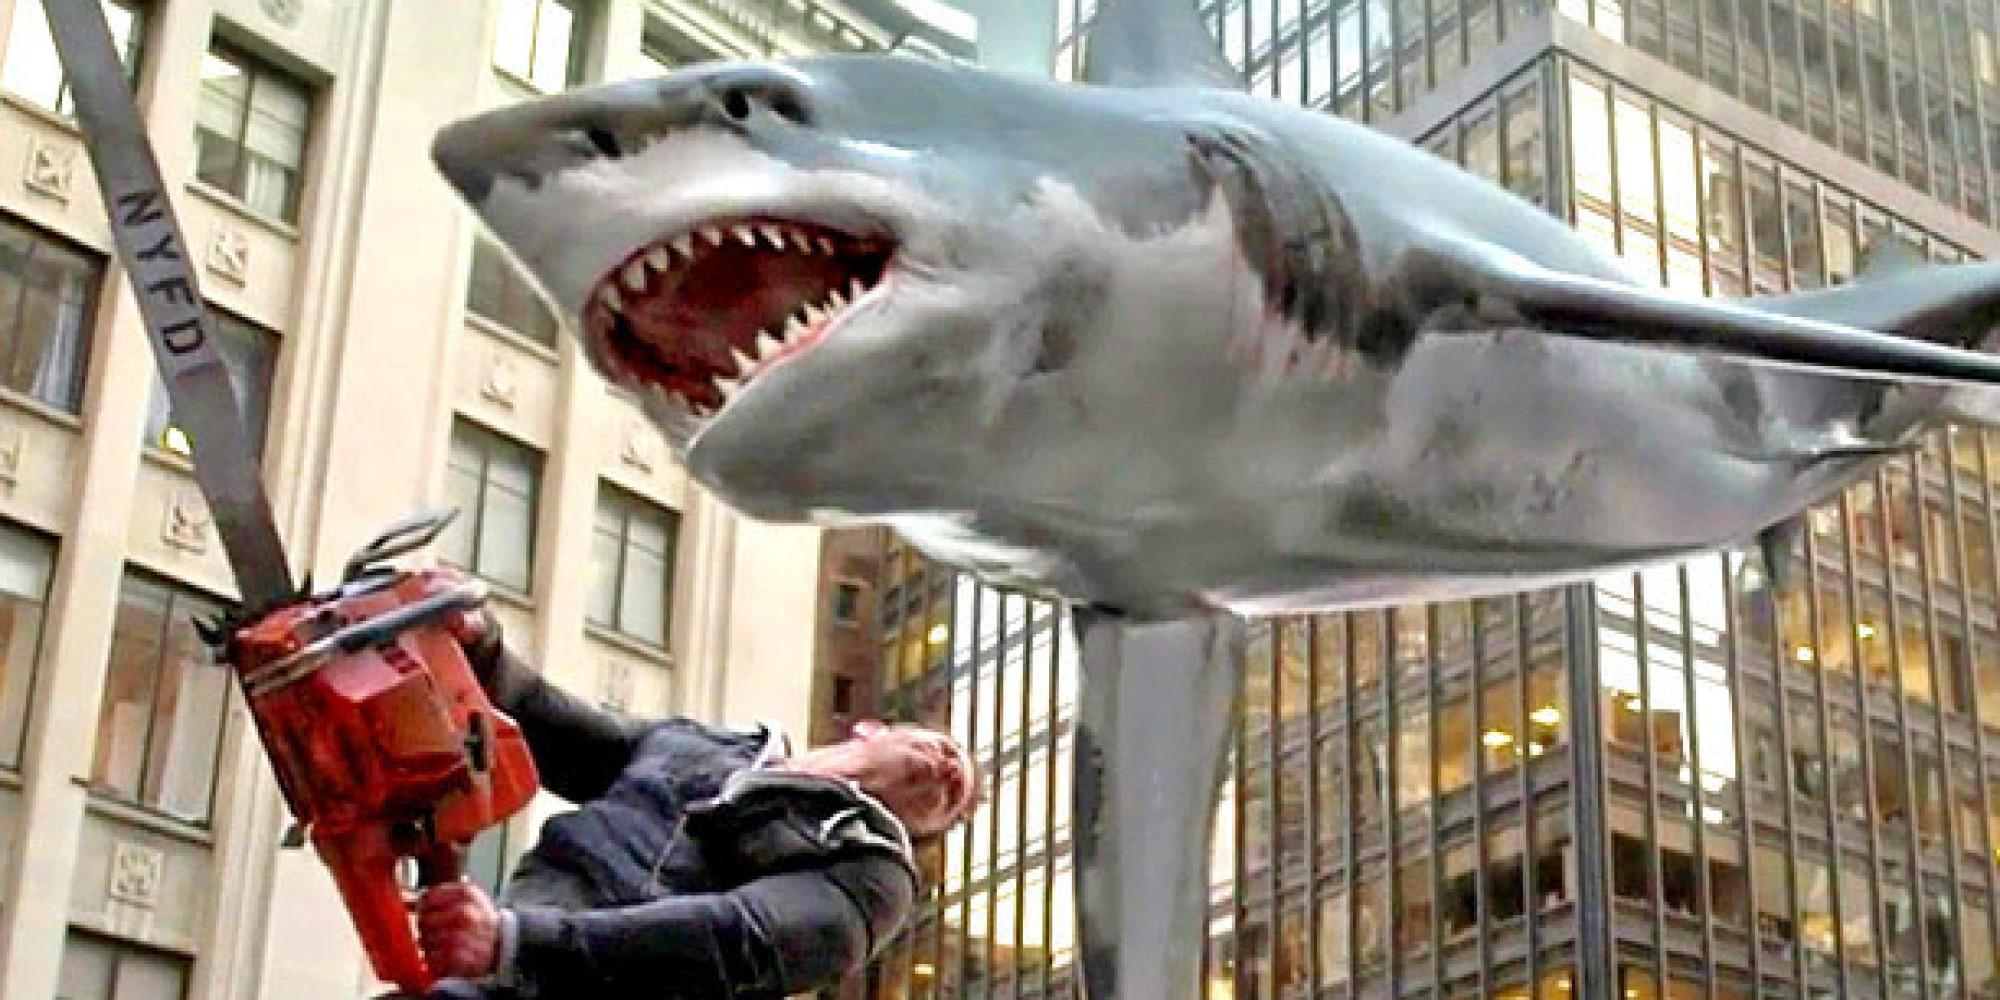 Sharknado 3 to be set in Washington, D.C. | Digital Trends